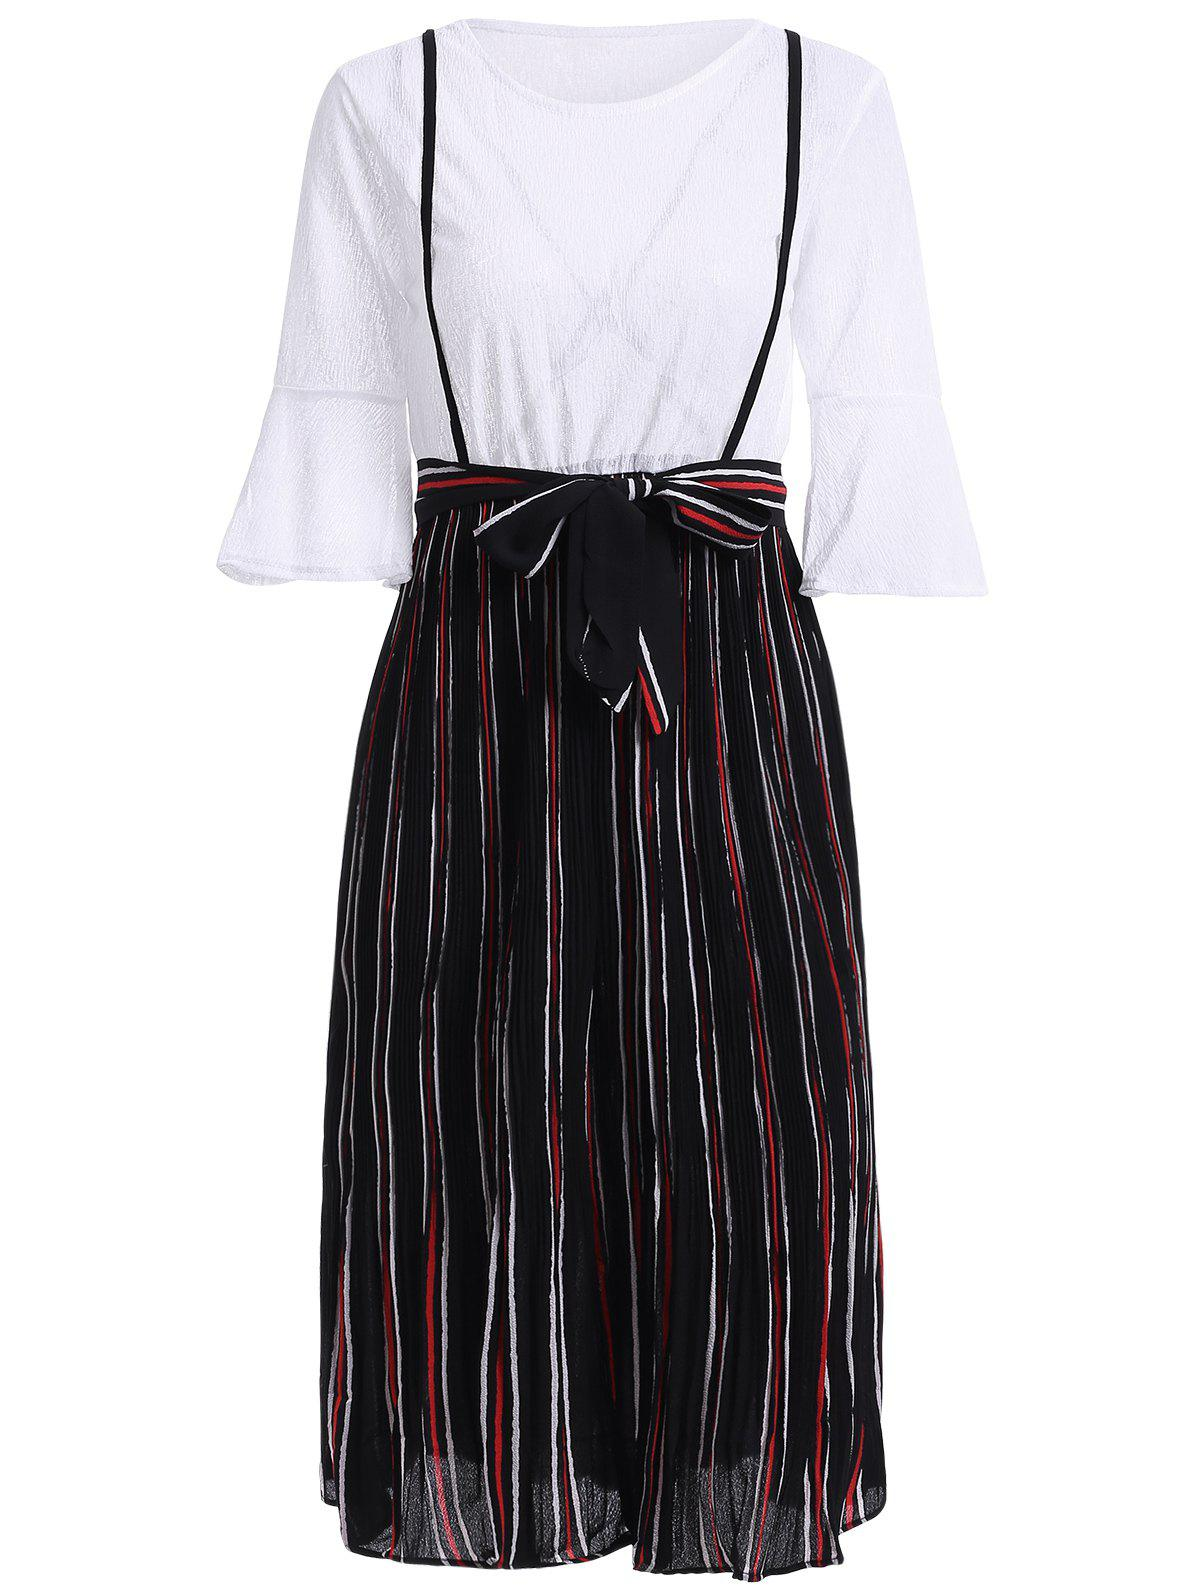 Stylish Flare Sleeve Striped Fake Twinset Dress For Women - WHITE ONE SIZE(FIT SIZE XS TO M)